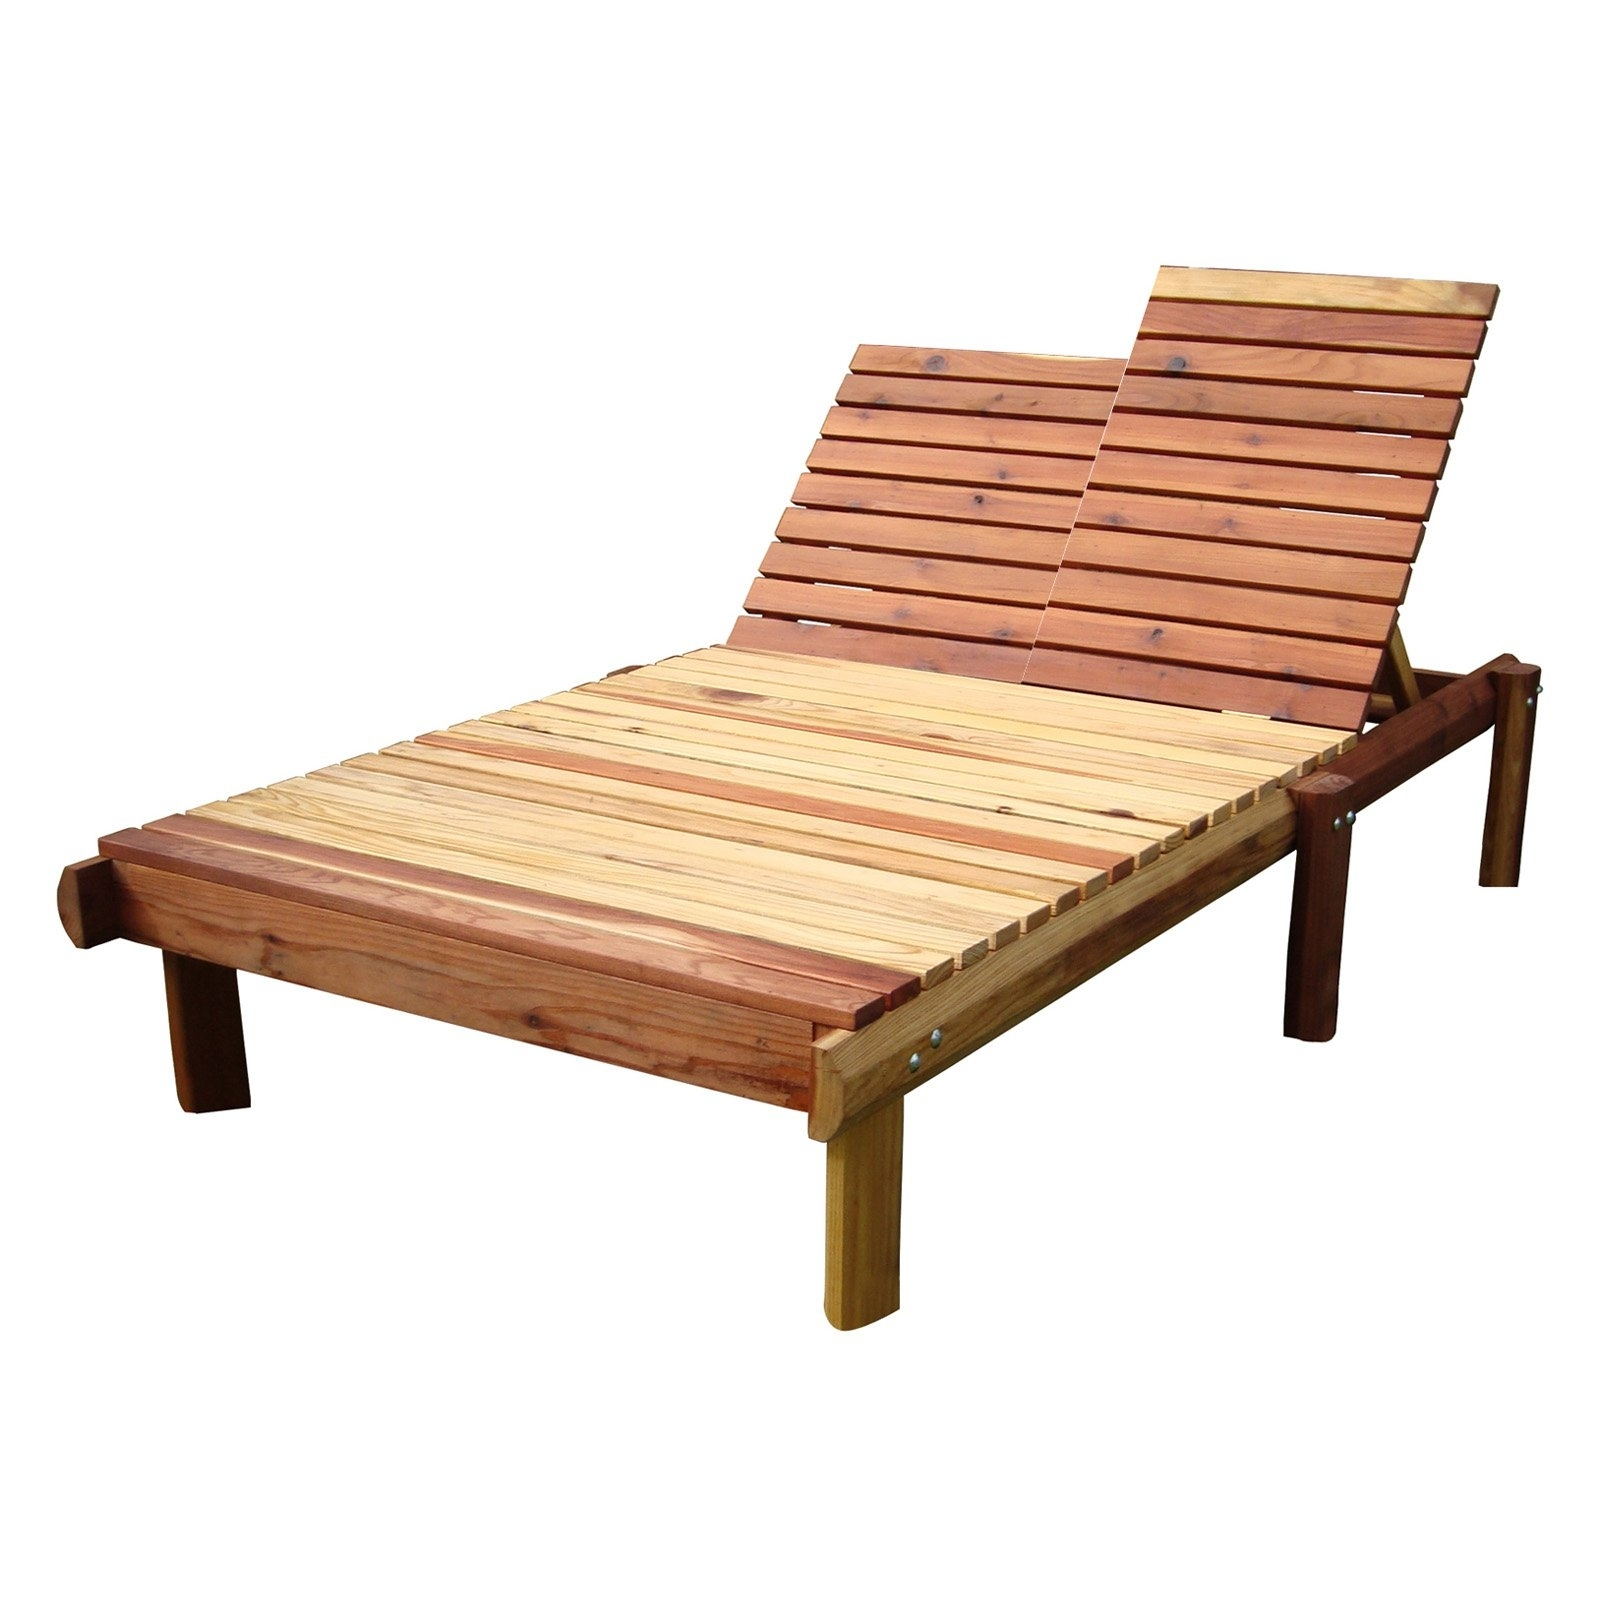 Hardwood Chaise Lounge Chairs In Trendy Wooden Lounge Chairs Pool • Lounge Chairs Ideas (View 10 of 15)